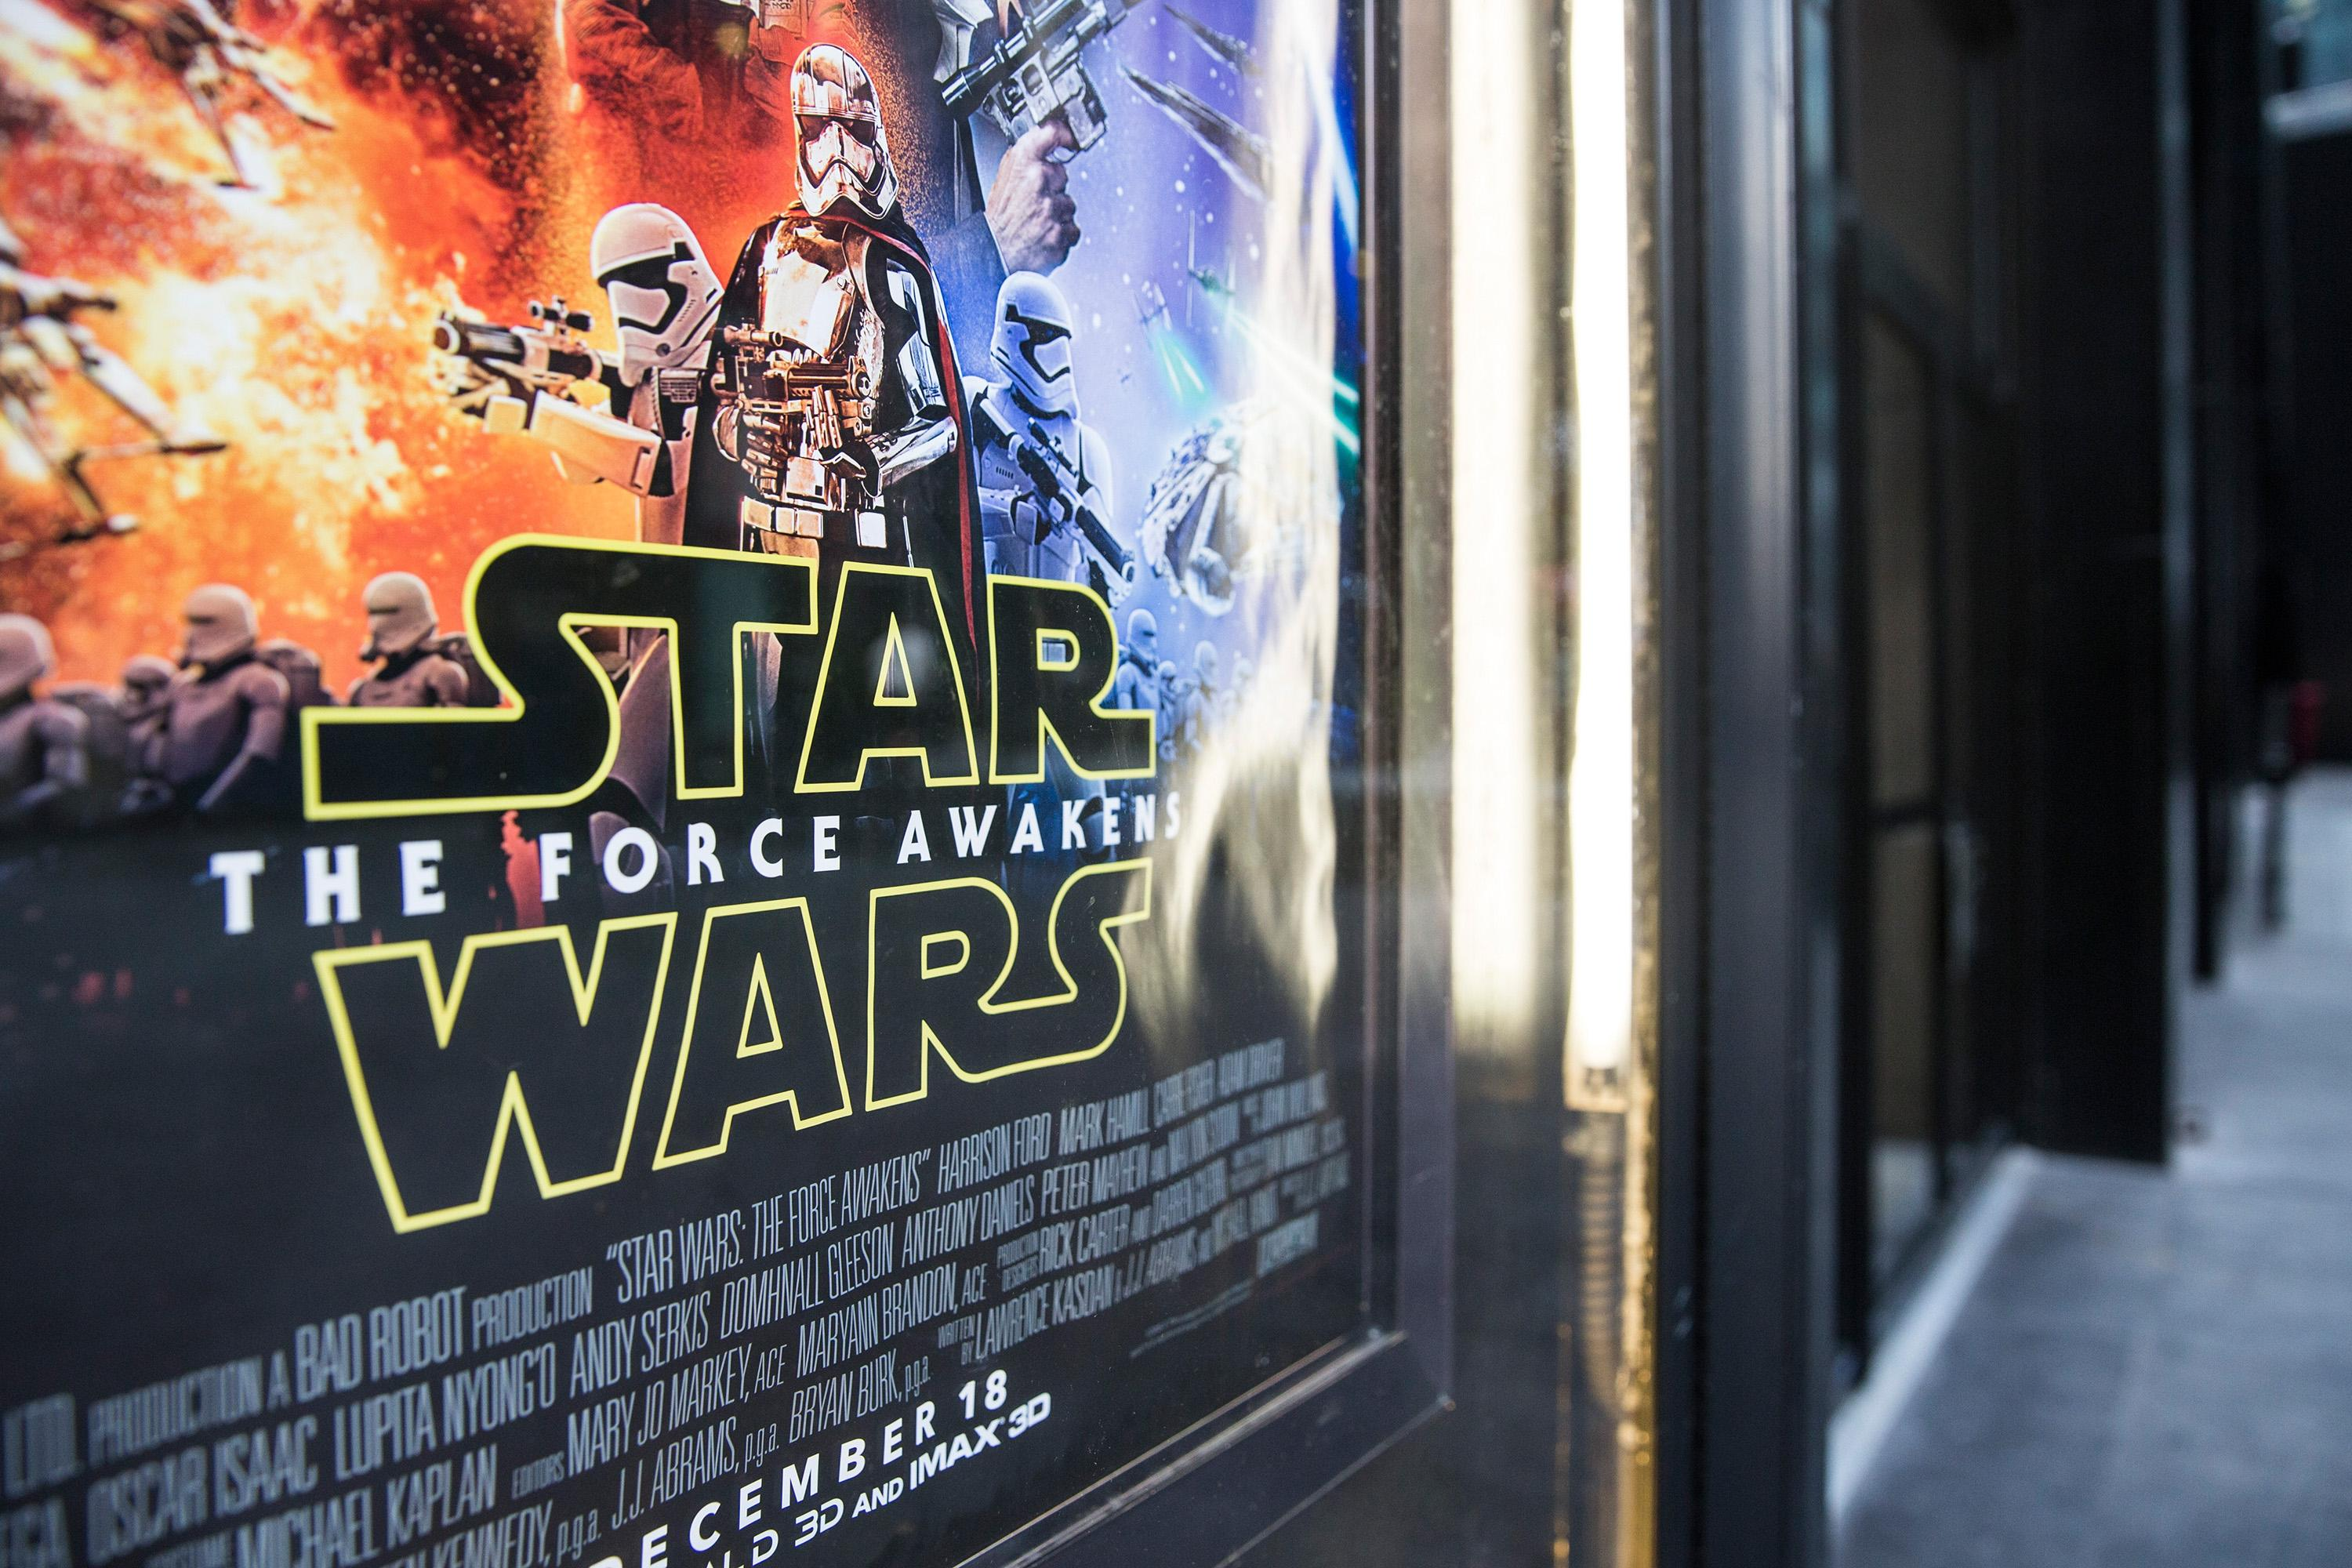 """Star Wars: The Force Awakens"""" poster"""